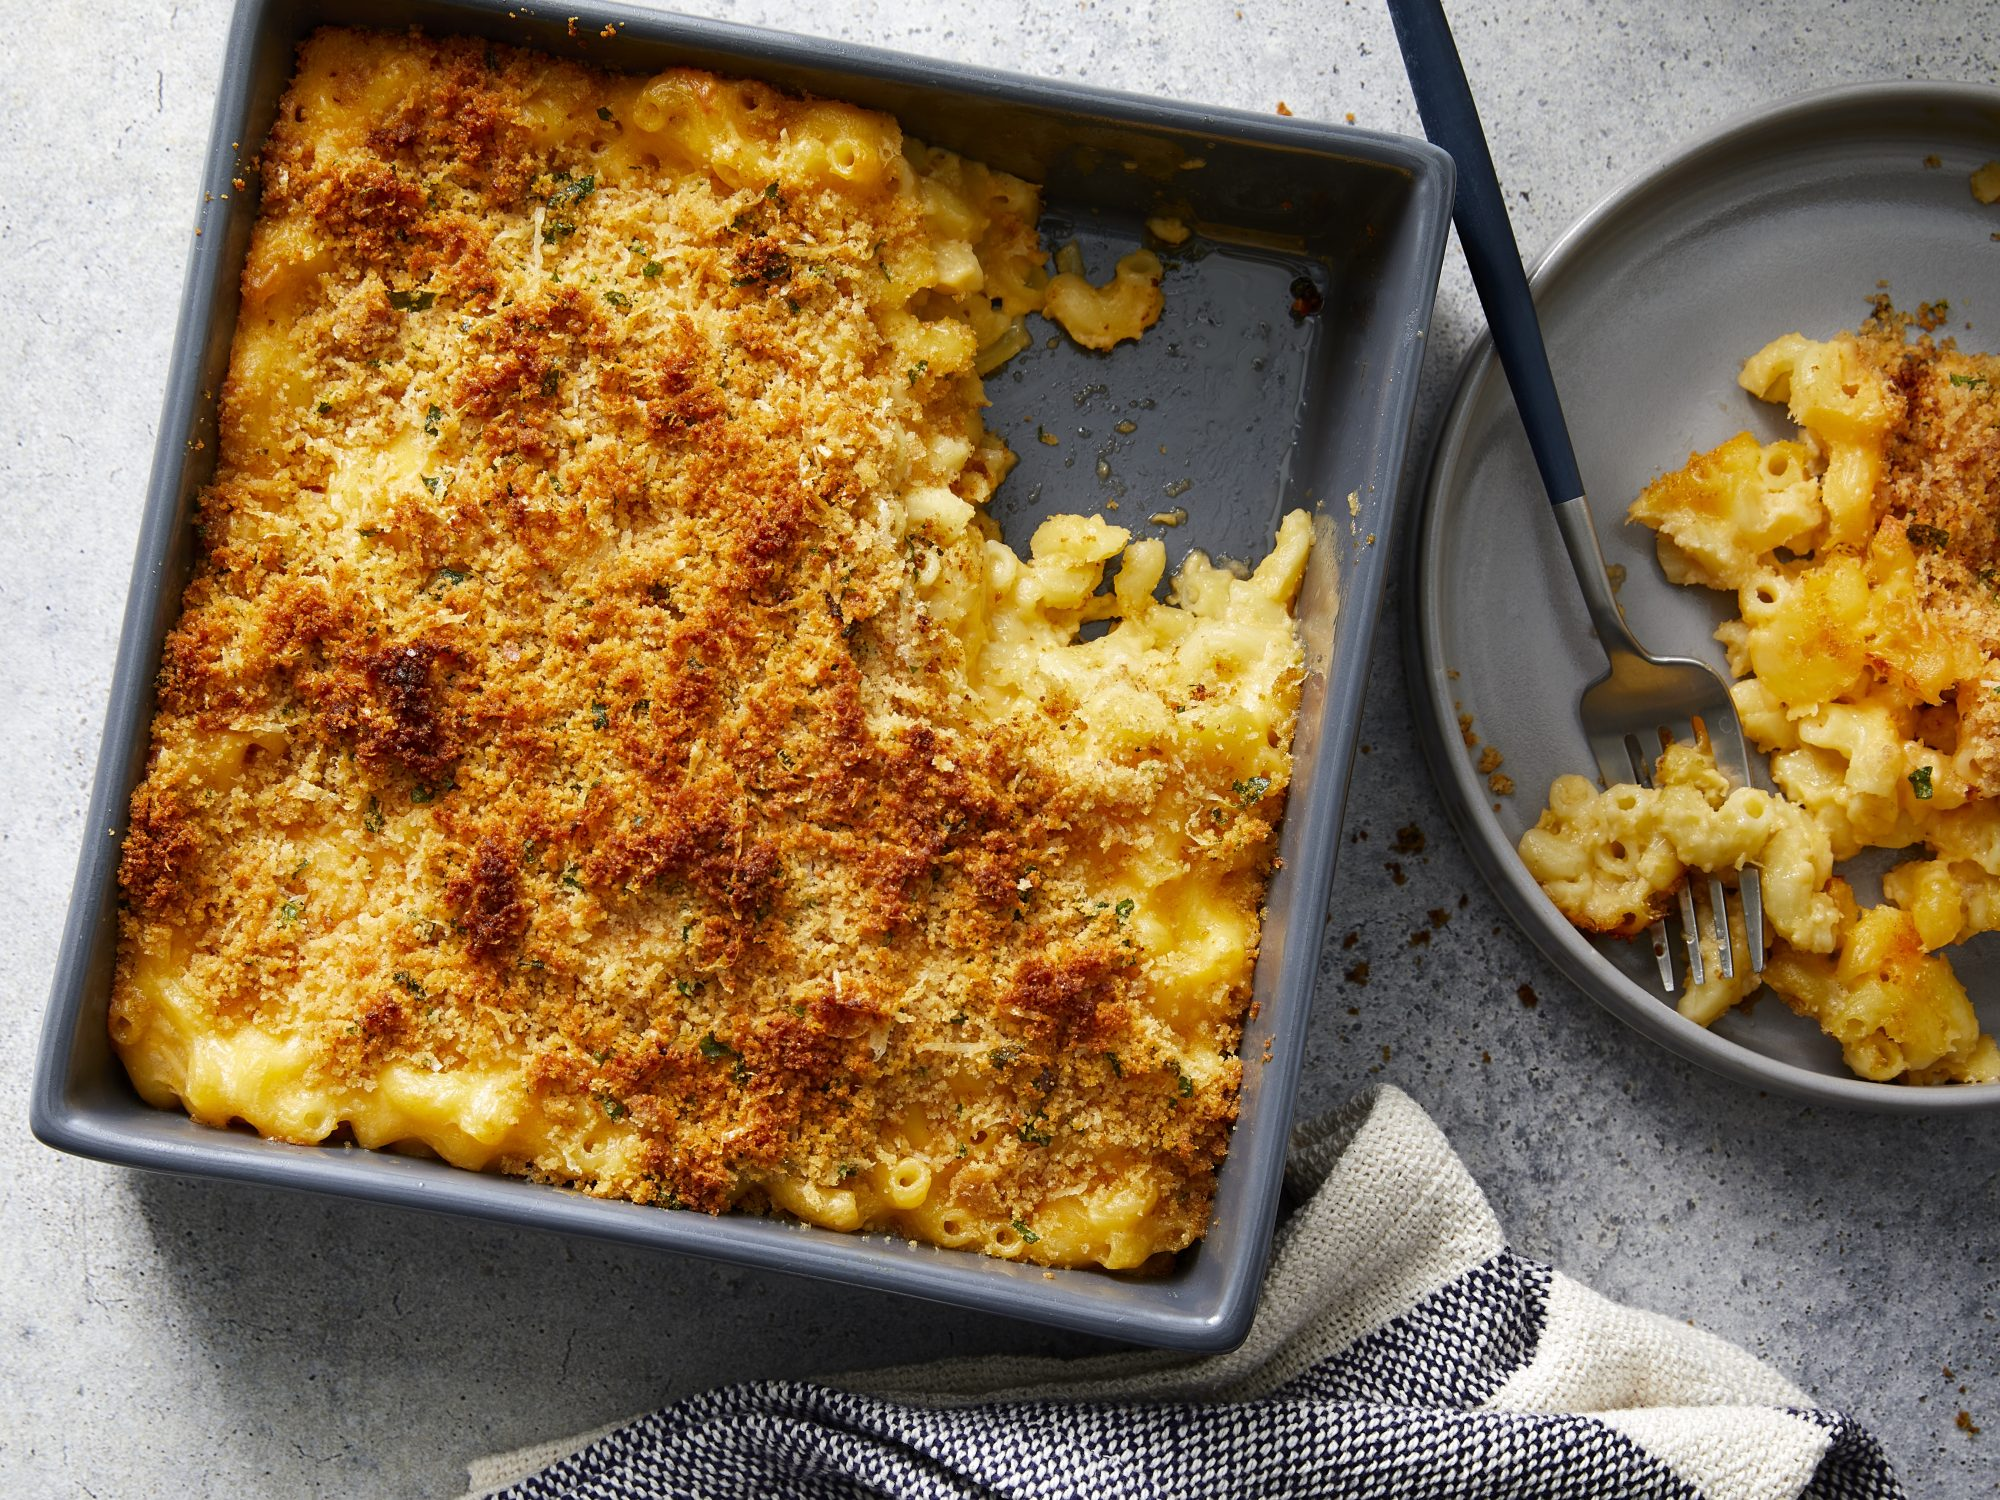 mr- baked macaroni and cheese reshoot